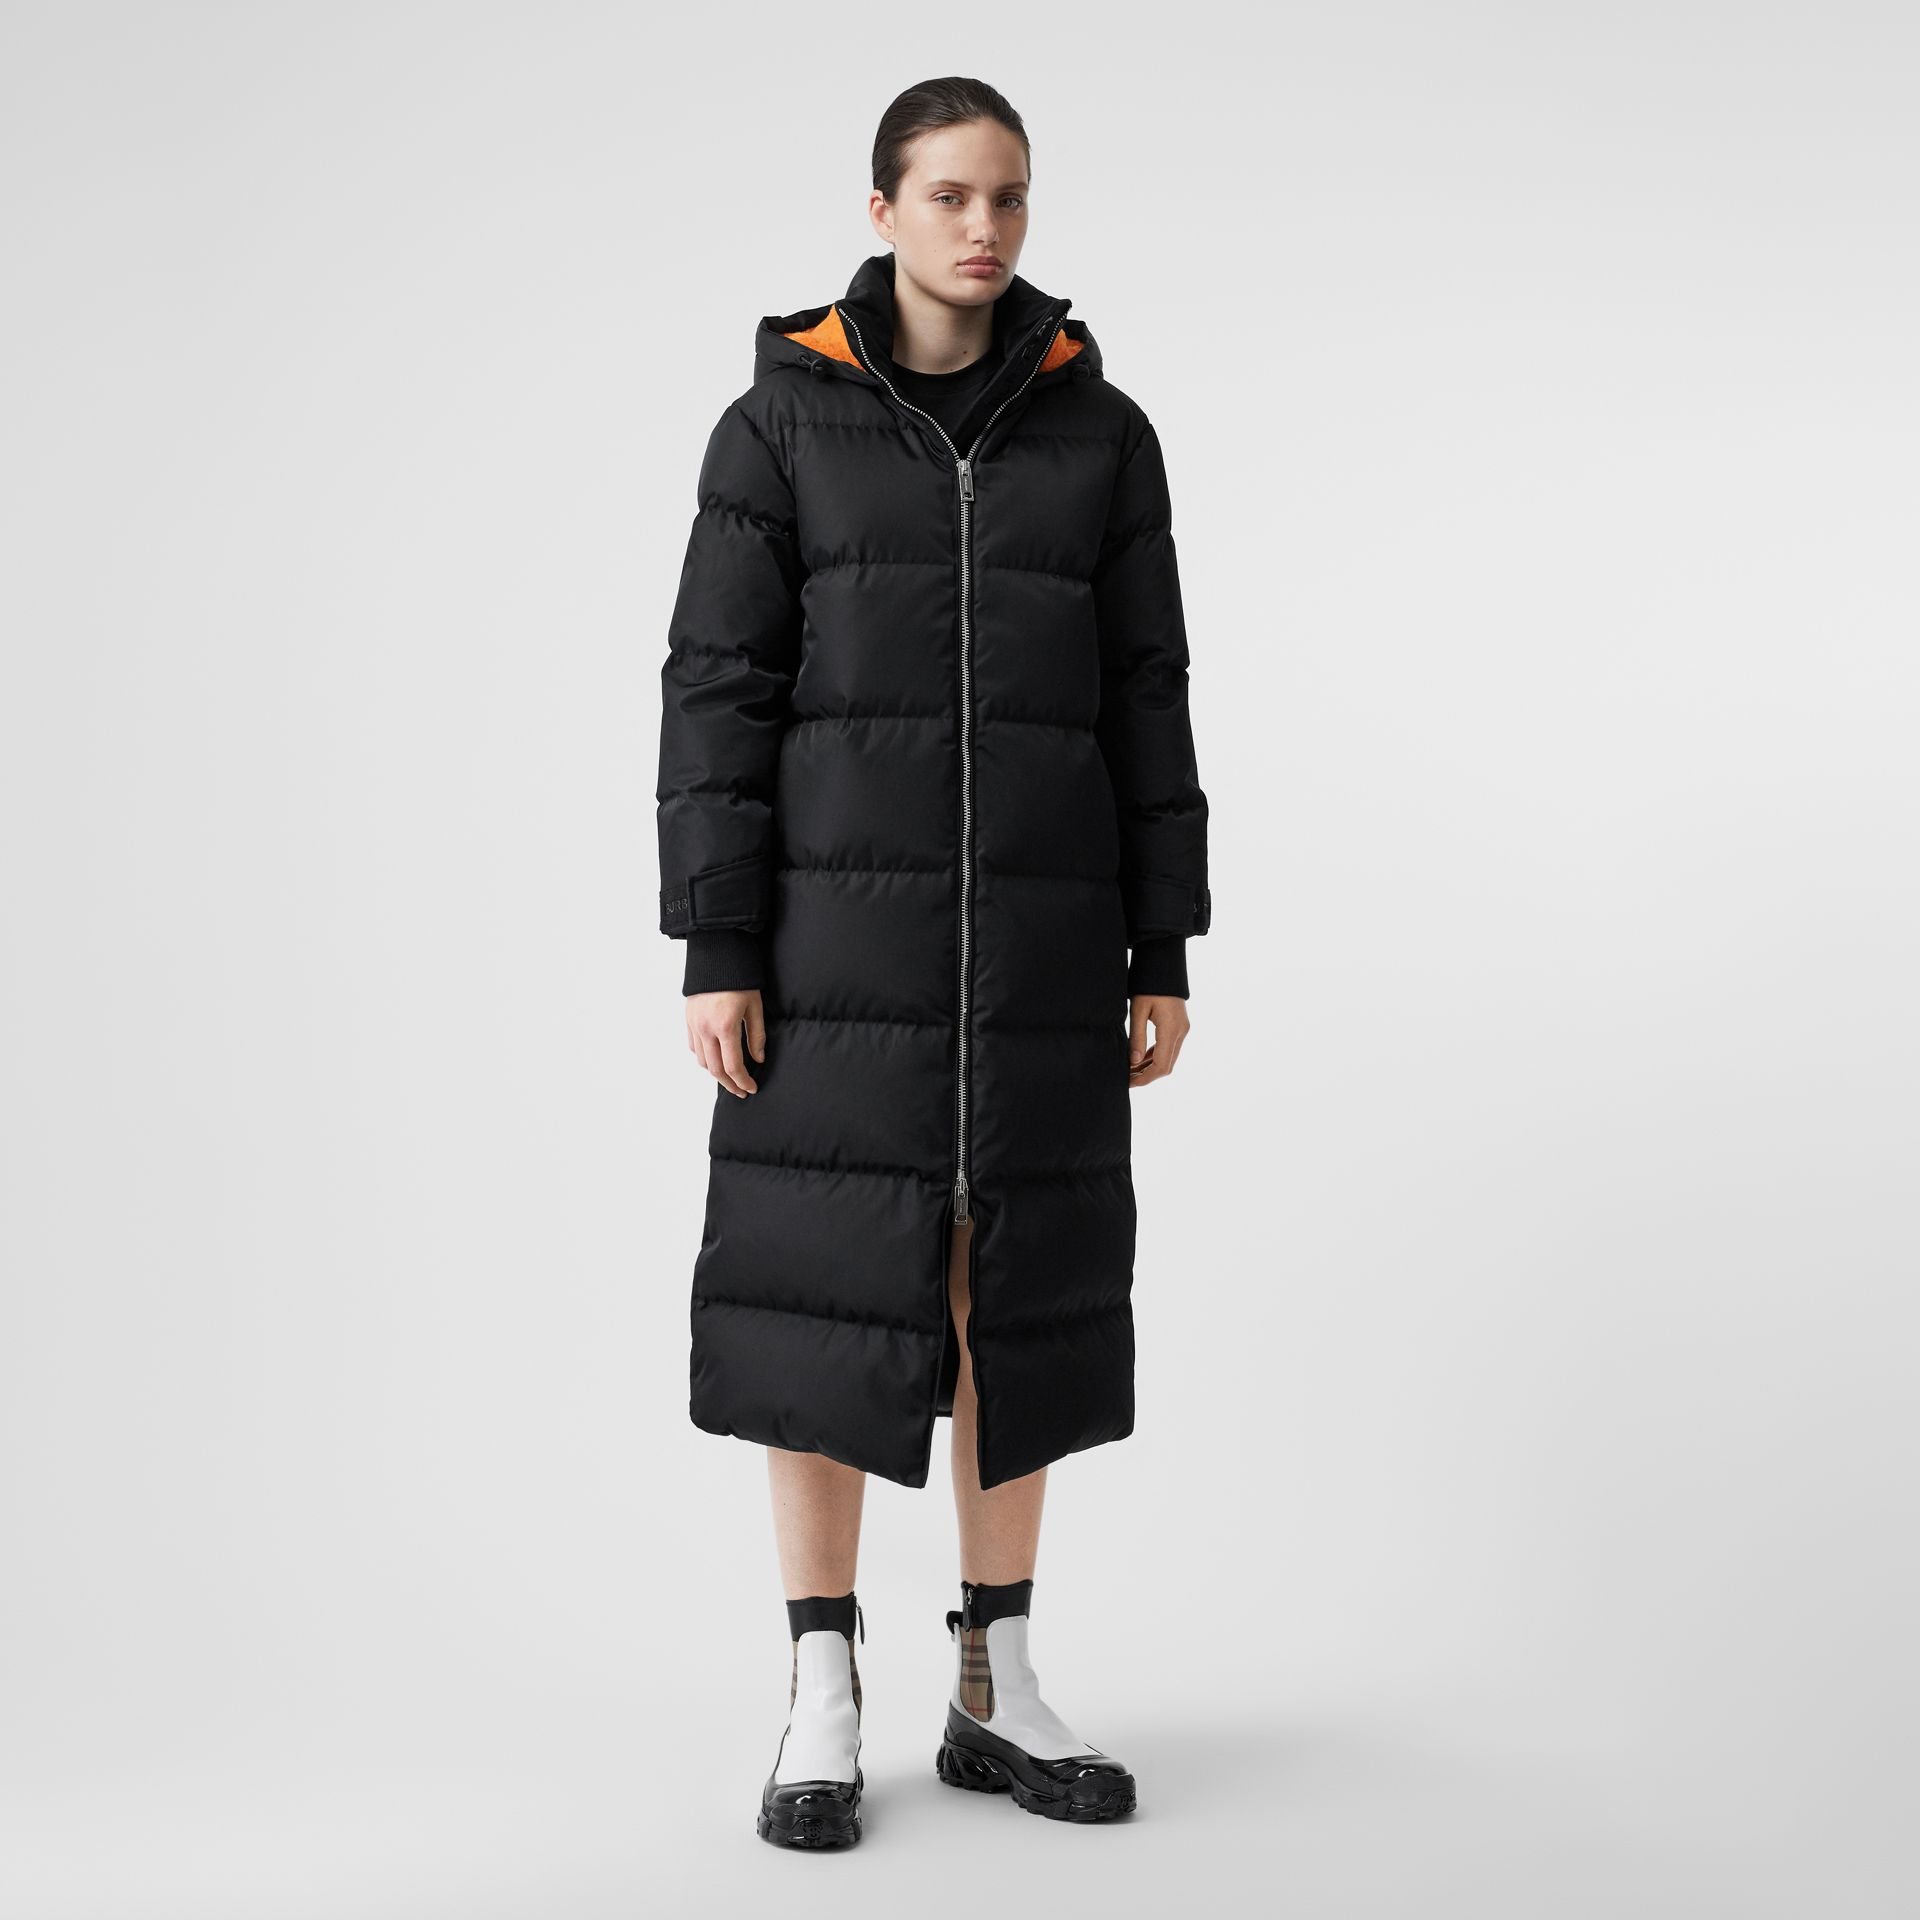 Logo Detail ECONYL® Puffer Coat in Black/orange - Women | Burberry Canada - gallery image 6